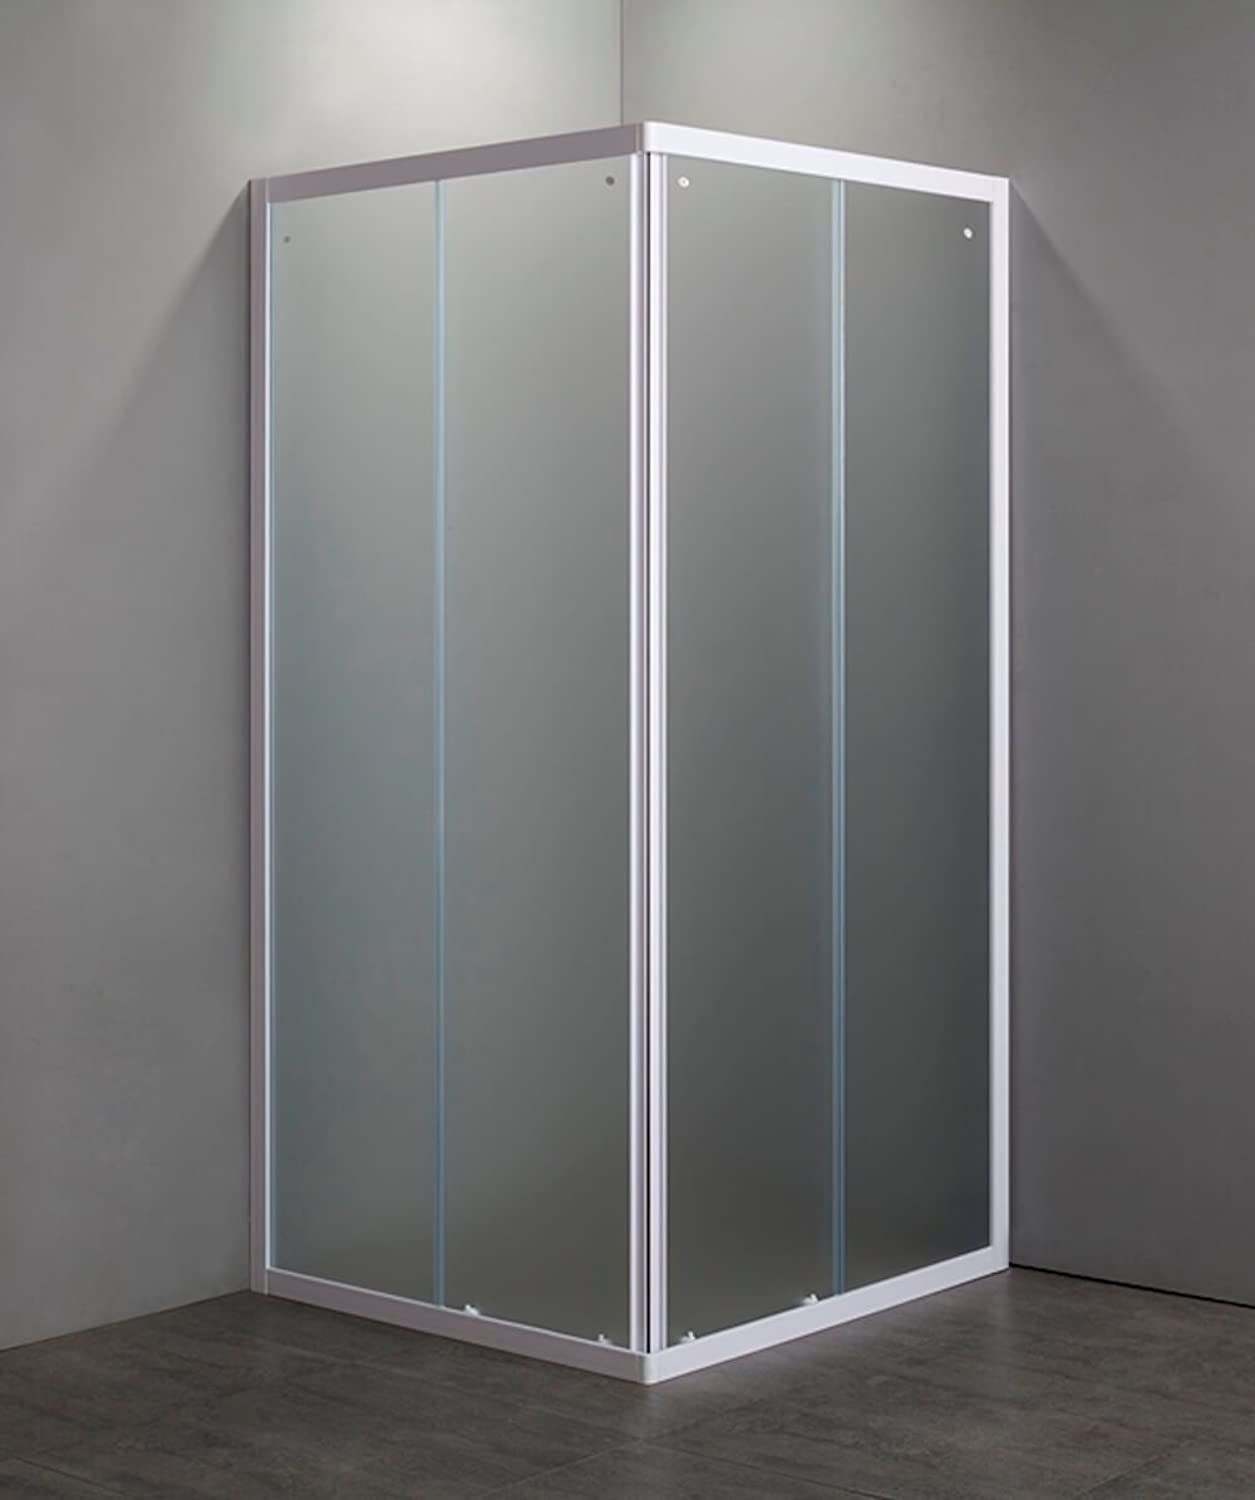 Shower Cabin Box Crystal 4?mm Opening Sliding 2?Sides 75?x 75?altezza185?cm Profiles White